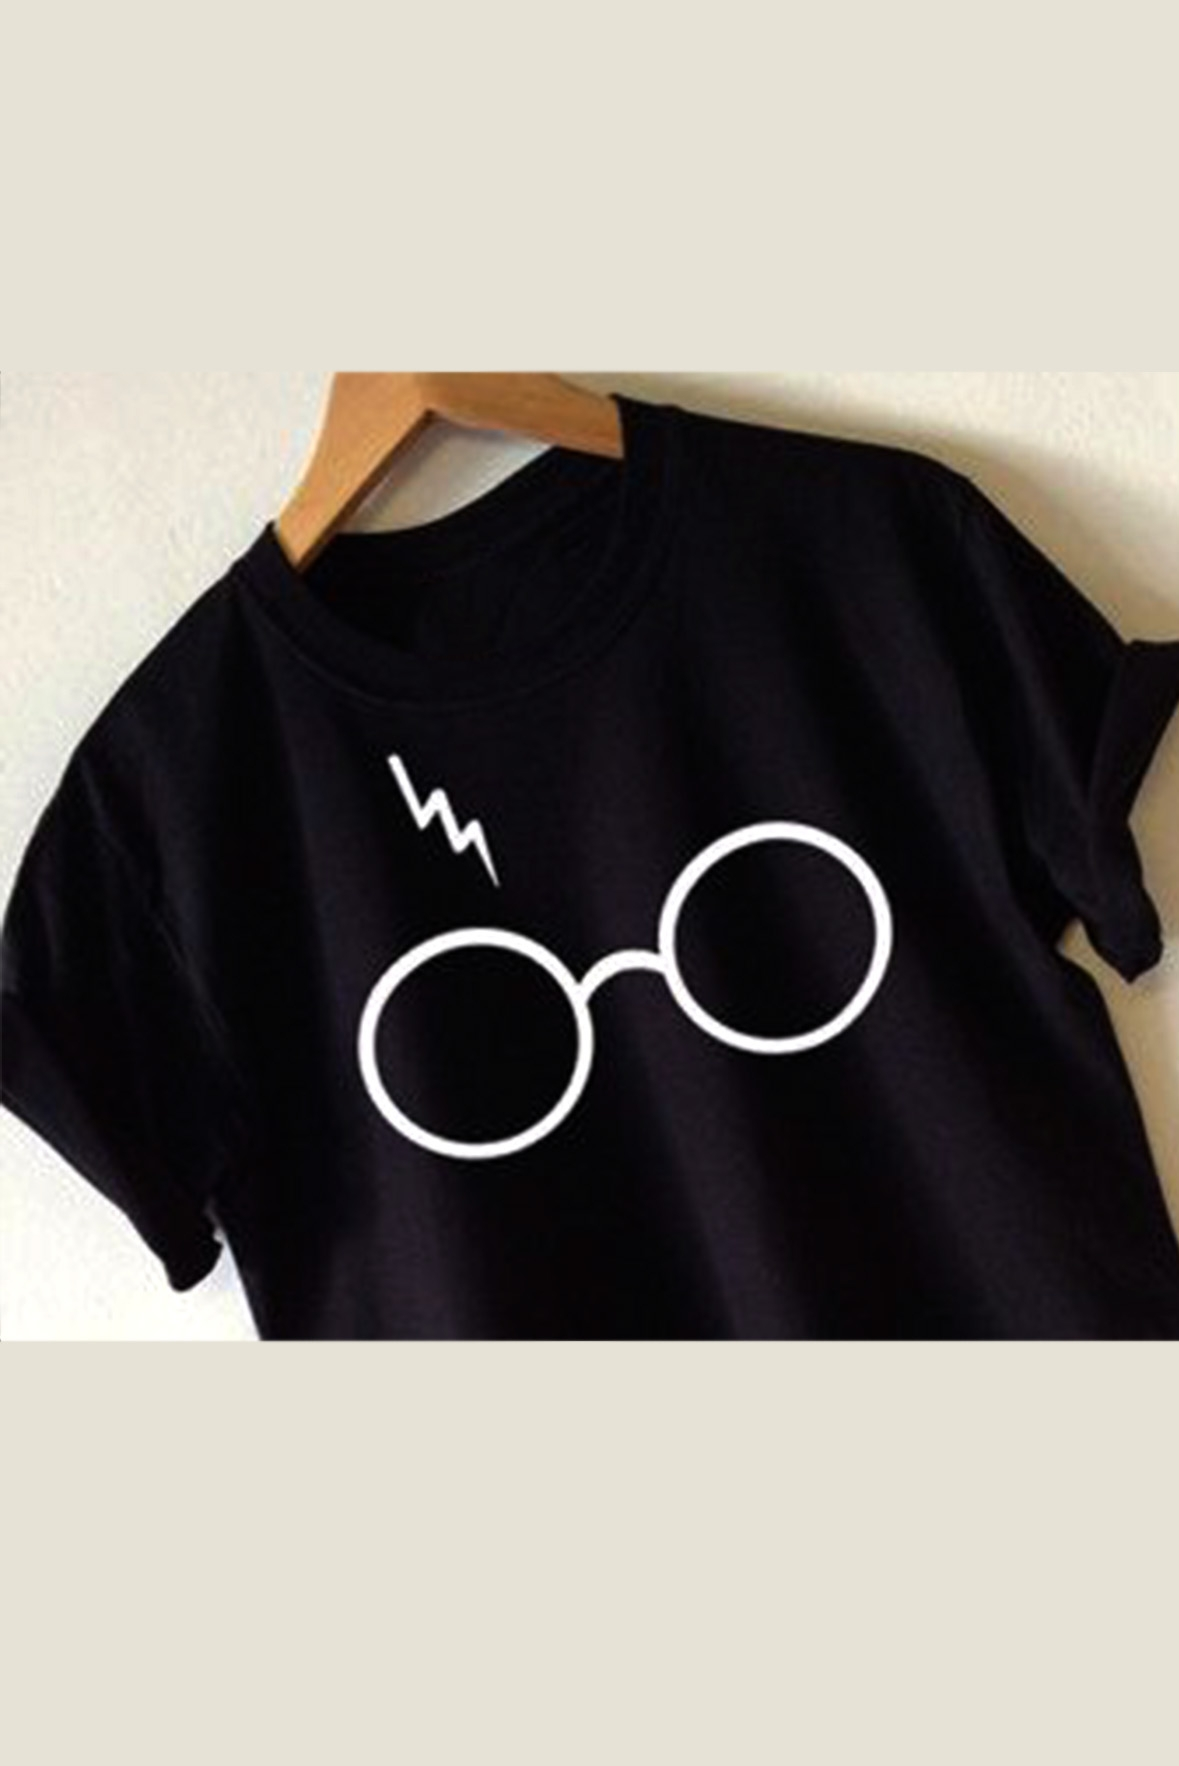 Spectacles t-shirt black